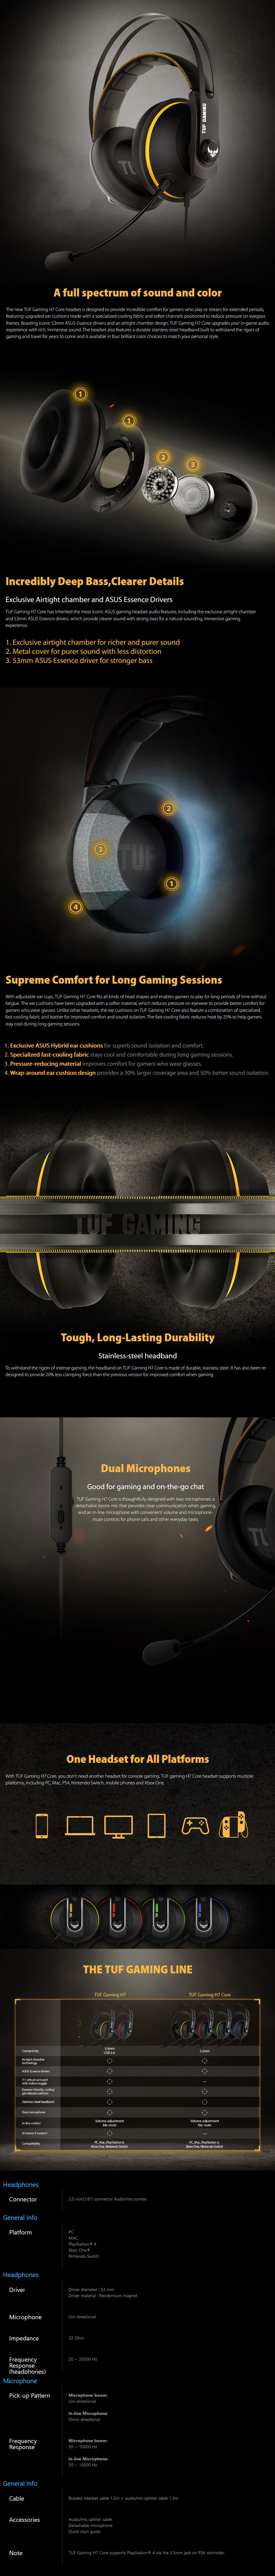 ASUS TUF Gaming H7 Core Gaming Headset - Yellow - Overview 1